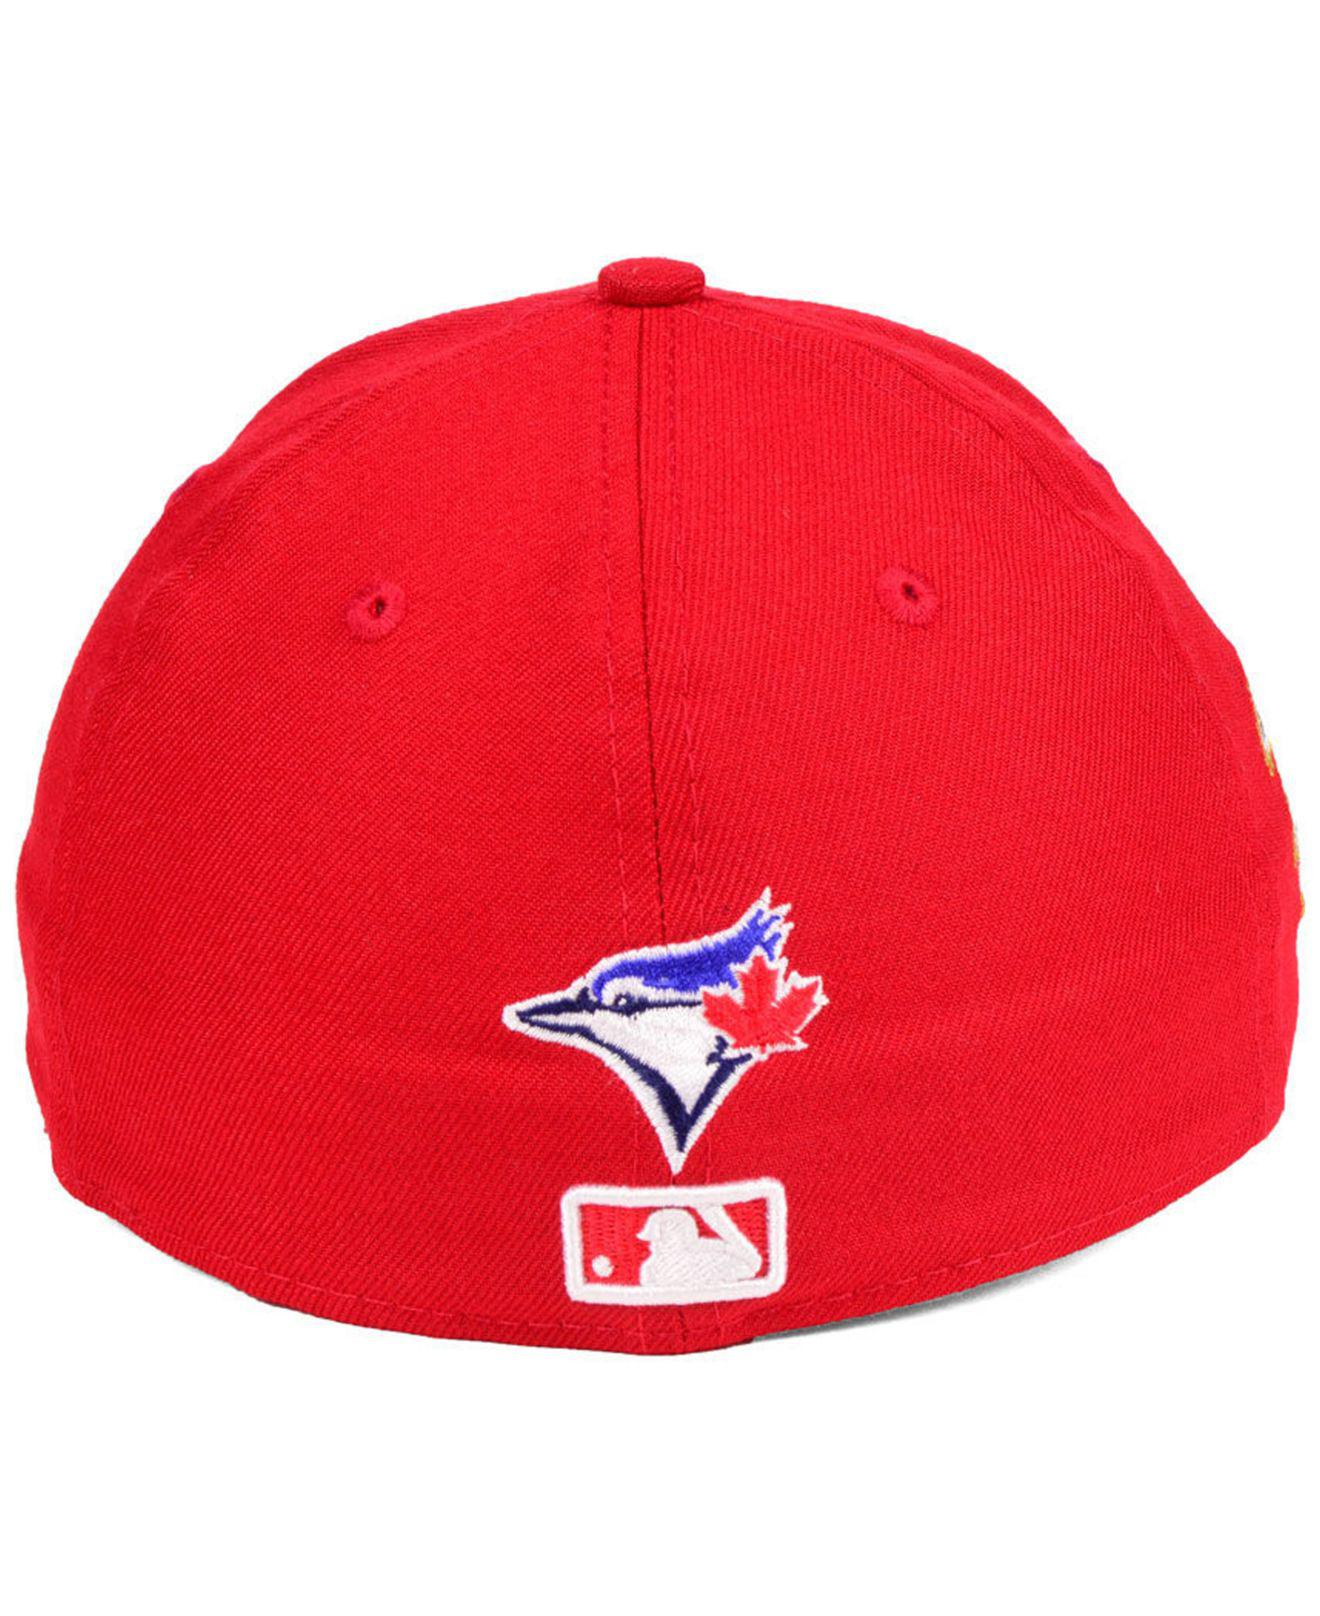 reputable site 094b2 6a89b KTZ Toronto Blue Jays Stars And Stripes Low Profile 59fifty Fitted ...